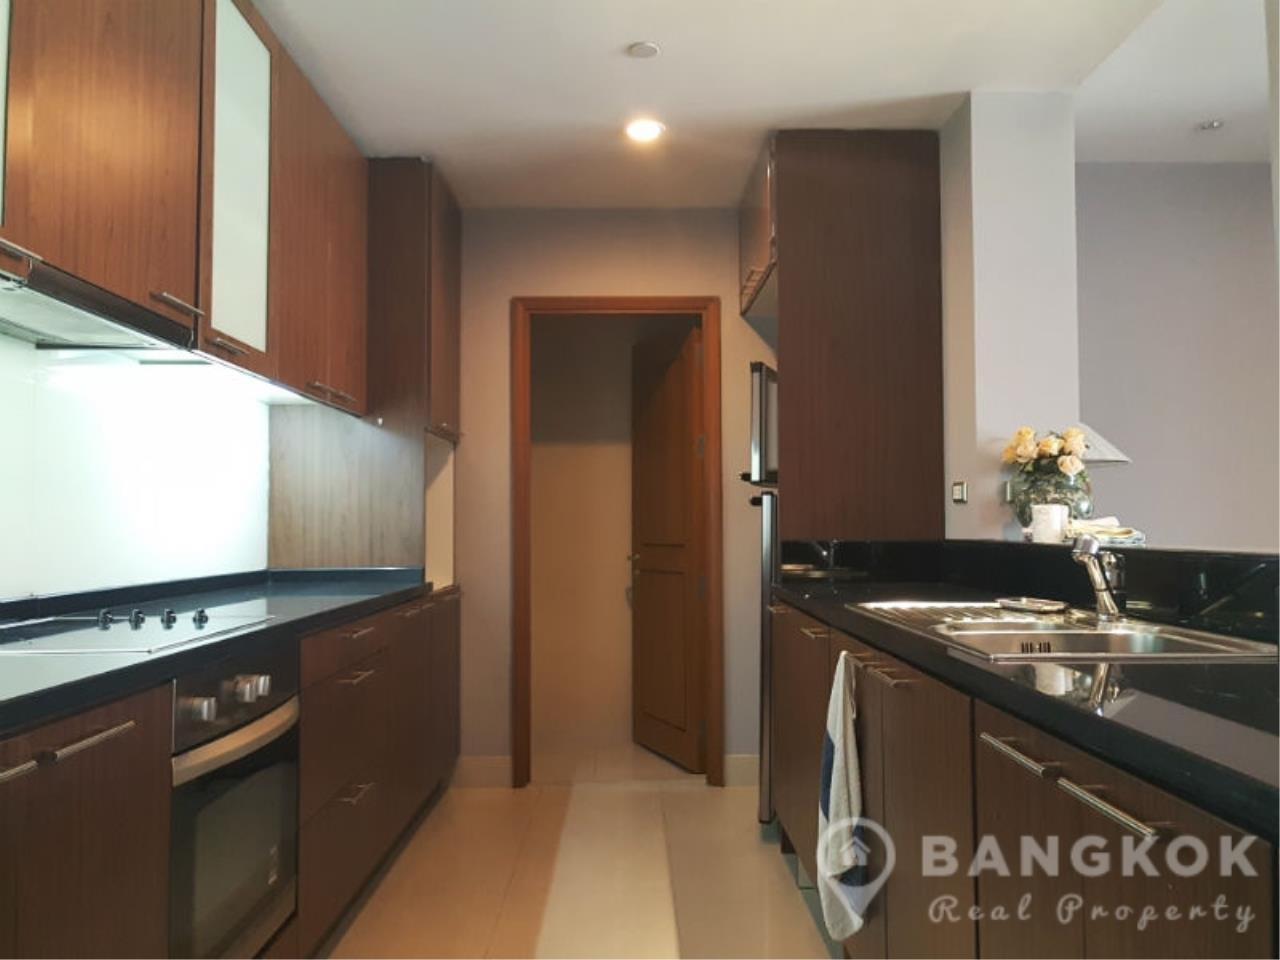 Bangkok Real Property Agency's Sky Villas (Ascott) Sathorn | Spacious High Floor 2 +1 Bed 2 Bath 7